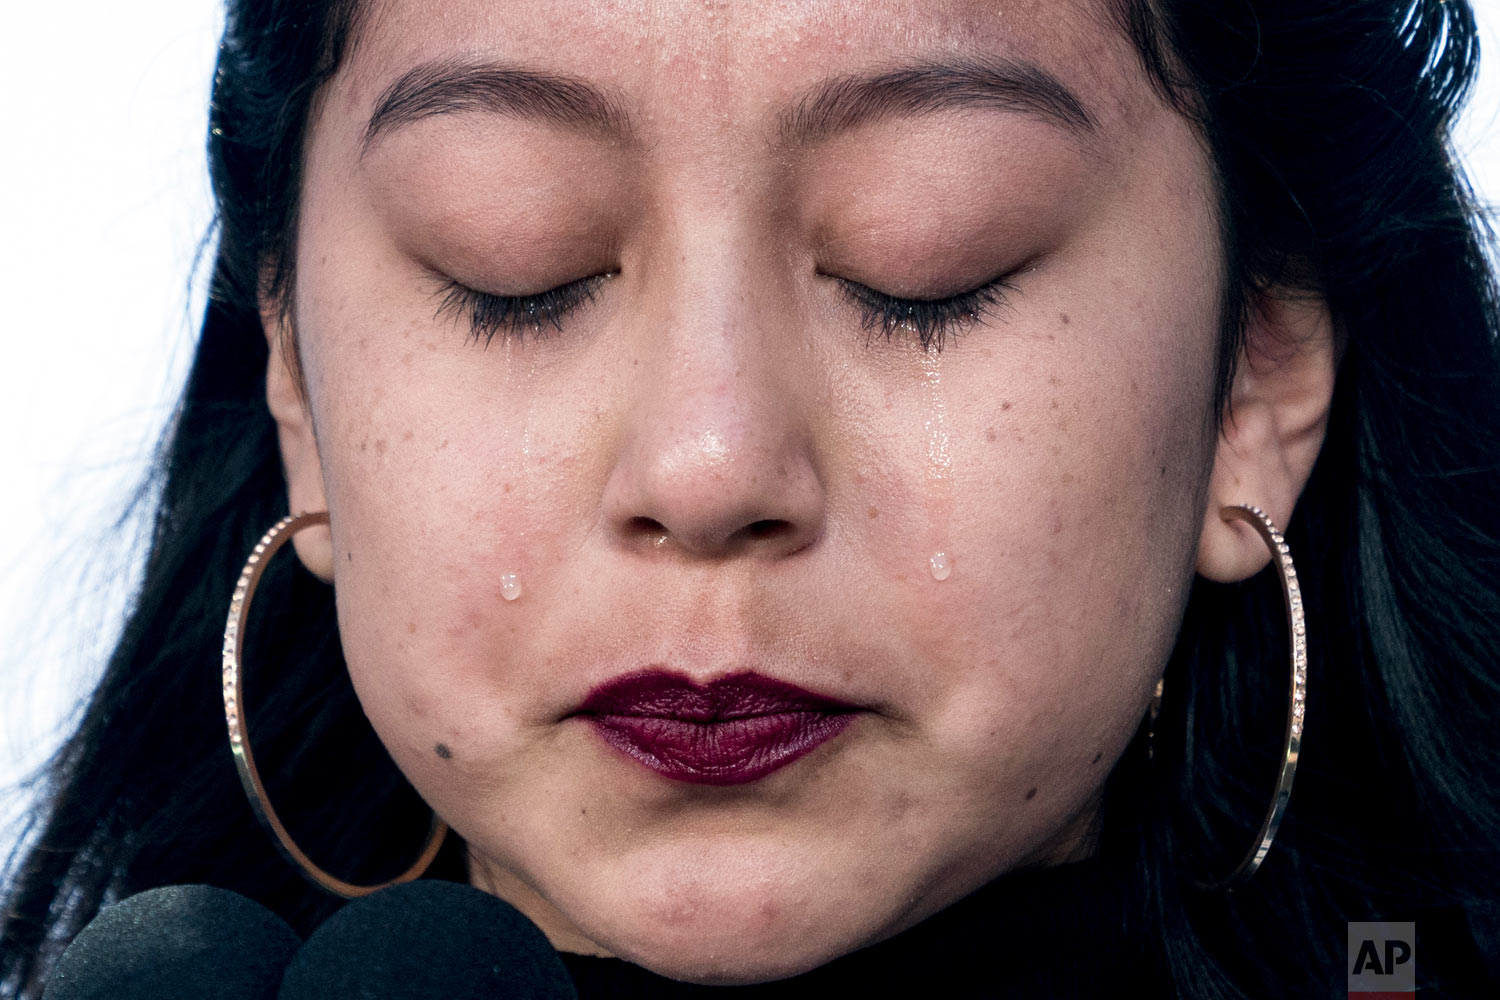 """Edna Chavez of Manual Arts High, south of downtown Los Angeles, cries as she speaks during the """"March for Our Lives"""" rally in support of gun control in Washington, Saturday, March 24, 2018. (AP Photo/Andrew Harnik)"""